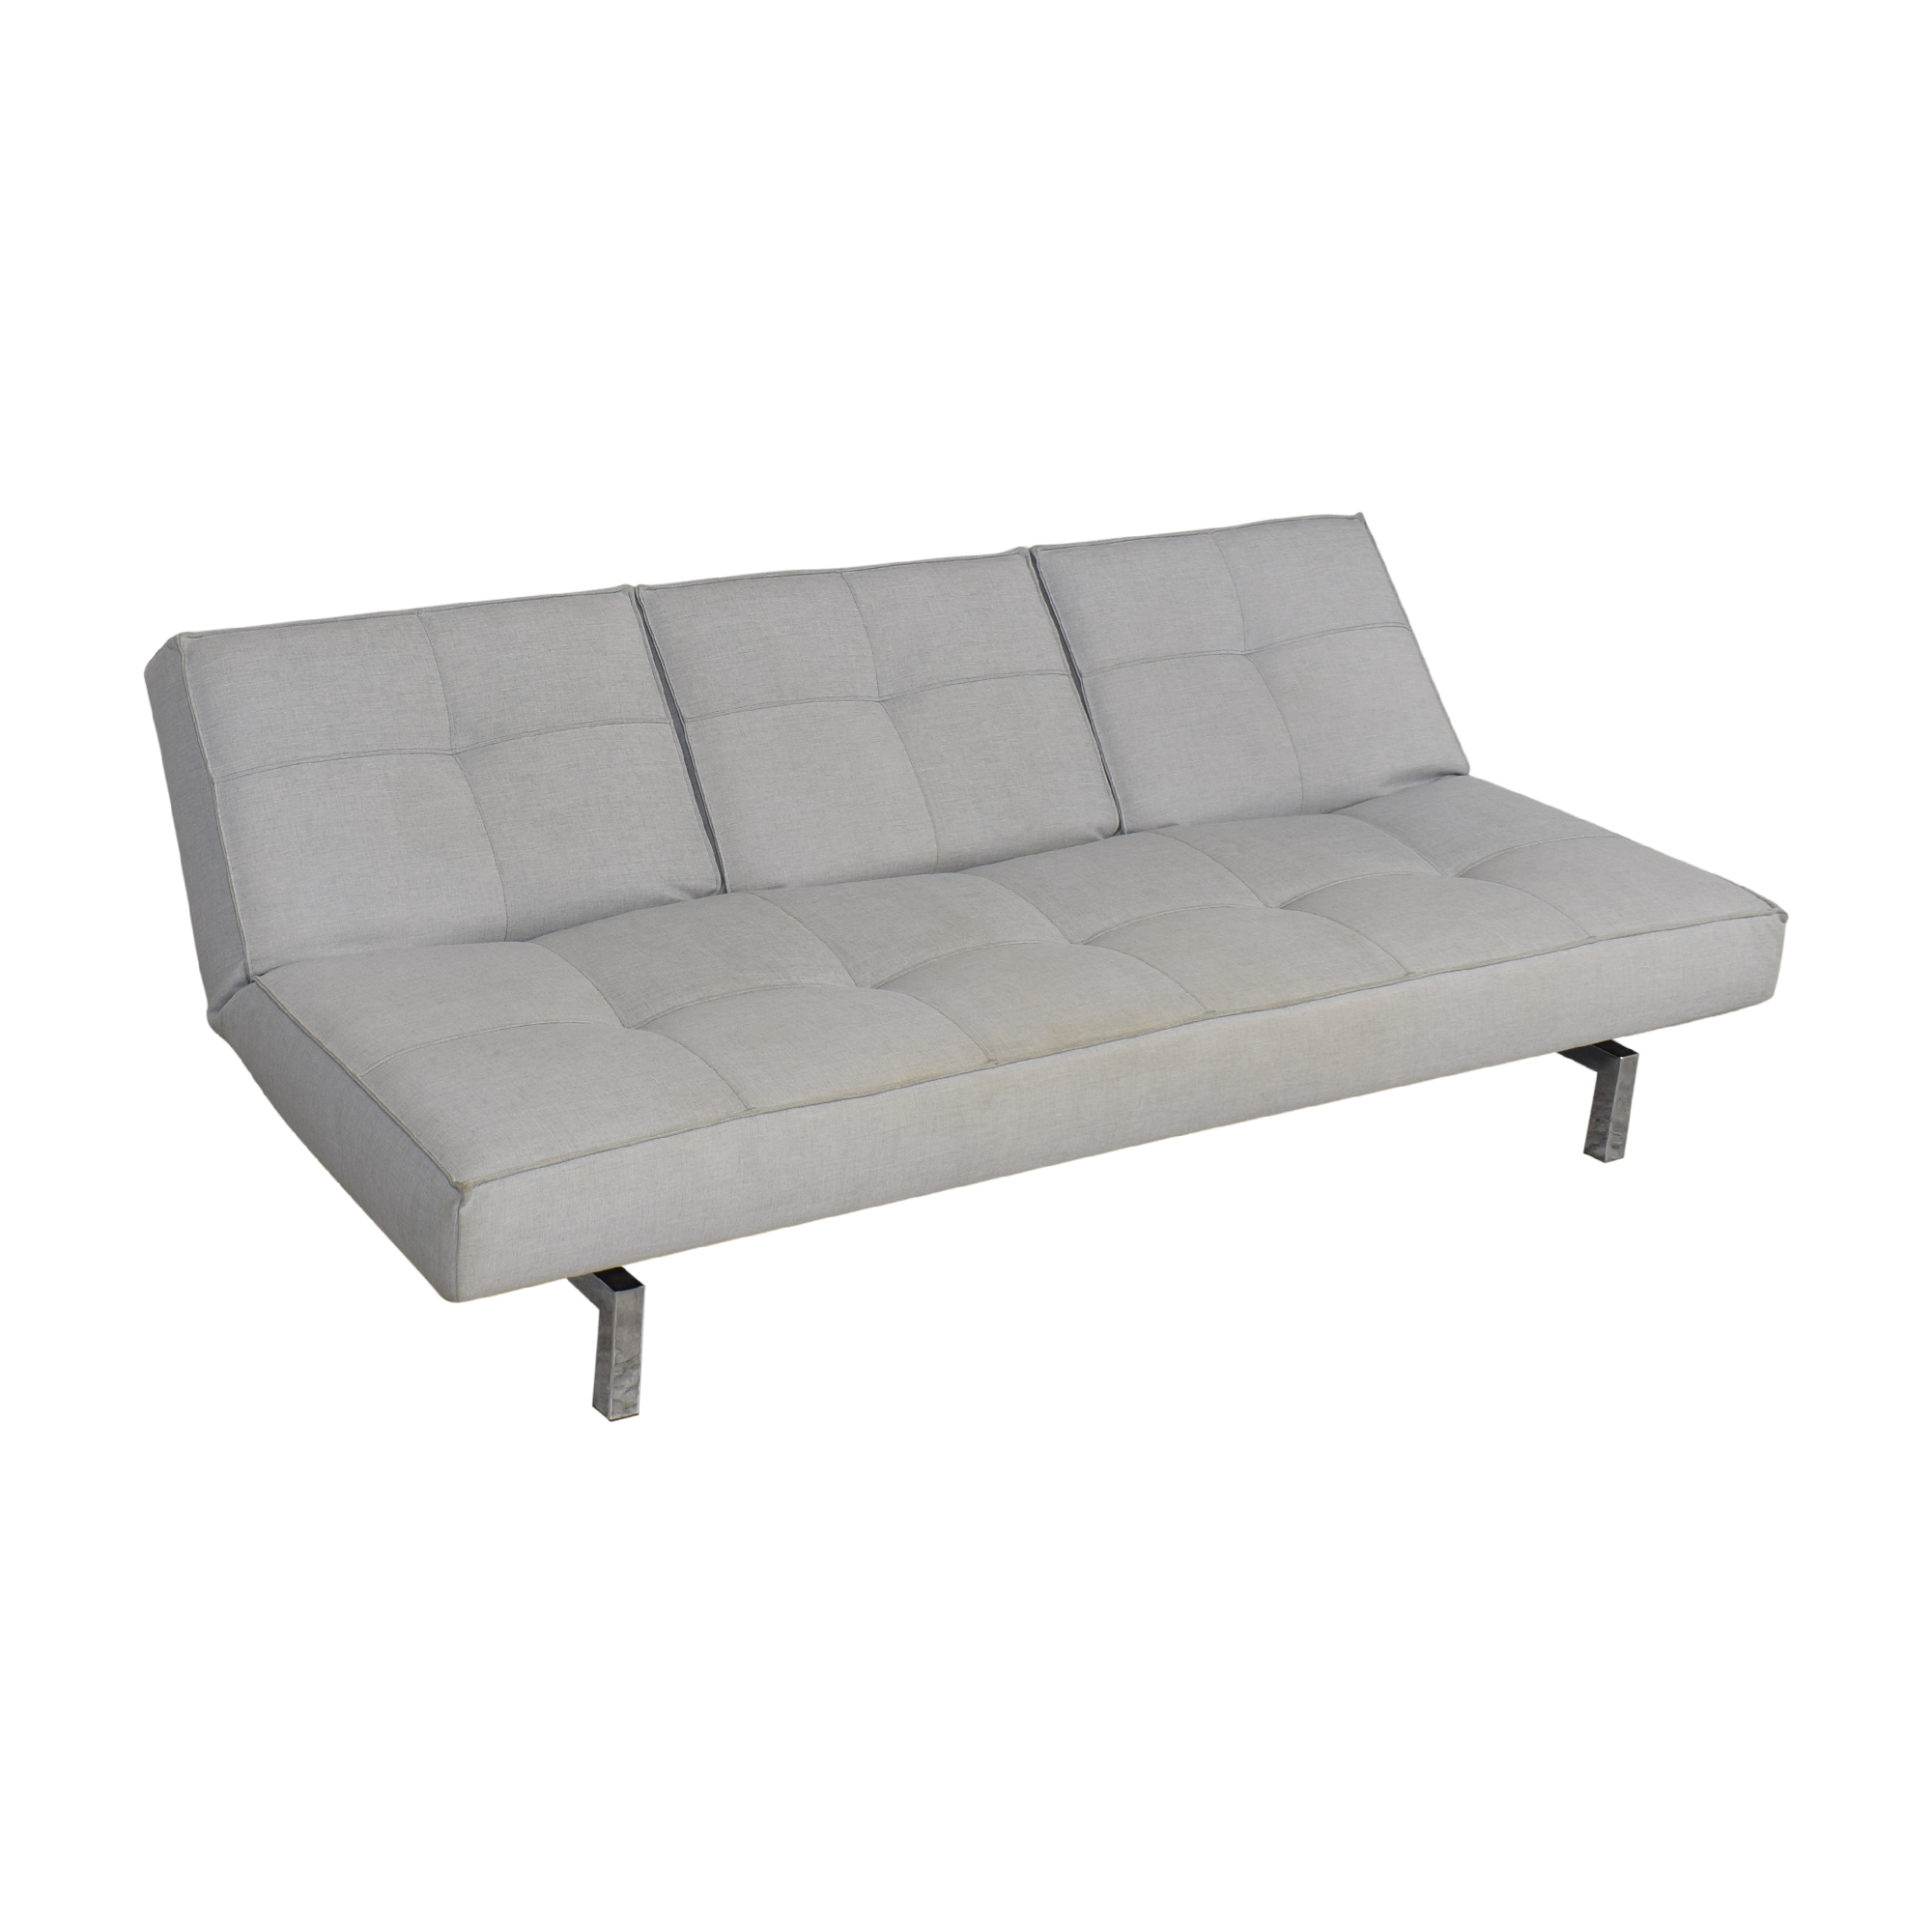 shop Innovation Living Innovation Living Convertible Tufted Sleeper Sofa online